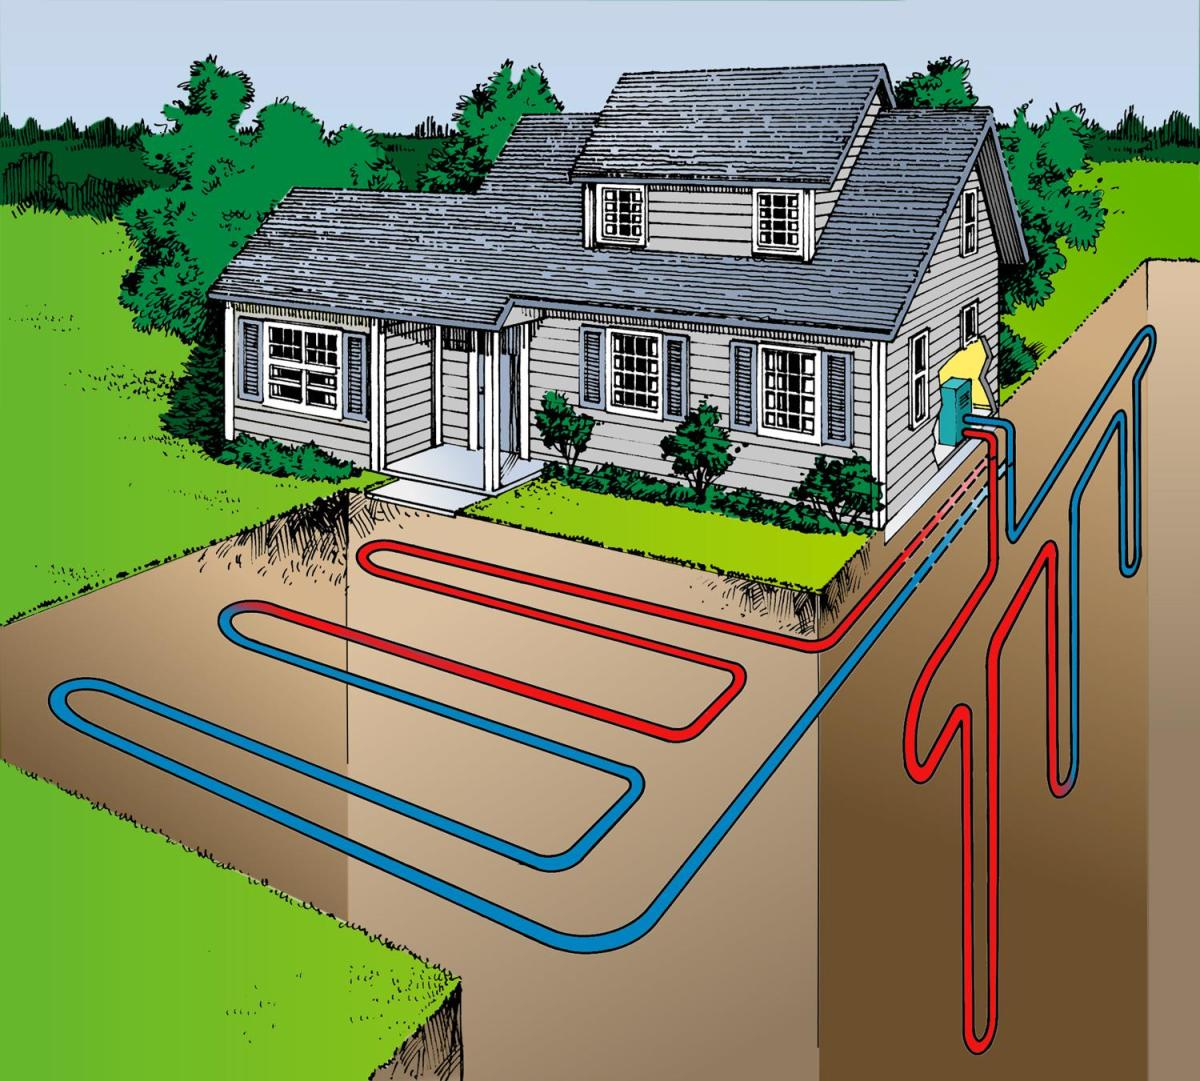 the significance of geothermal heating essay Geothermal heat pumps, or ground source heat pumps (gshp) have been around for find this pin and more on hvac, plumbing and electrical by hank1647 how does geothermal radiant floor heating work.